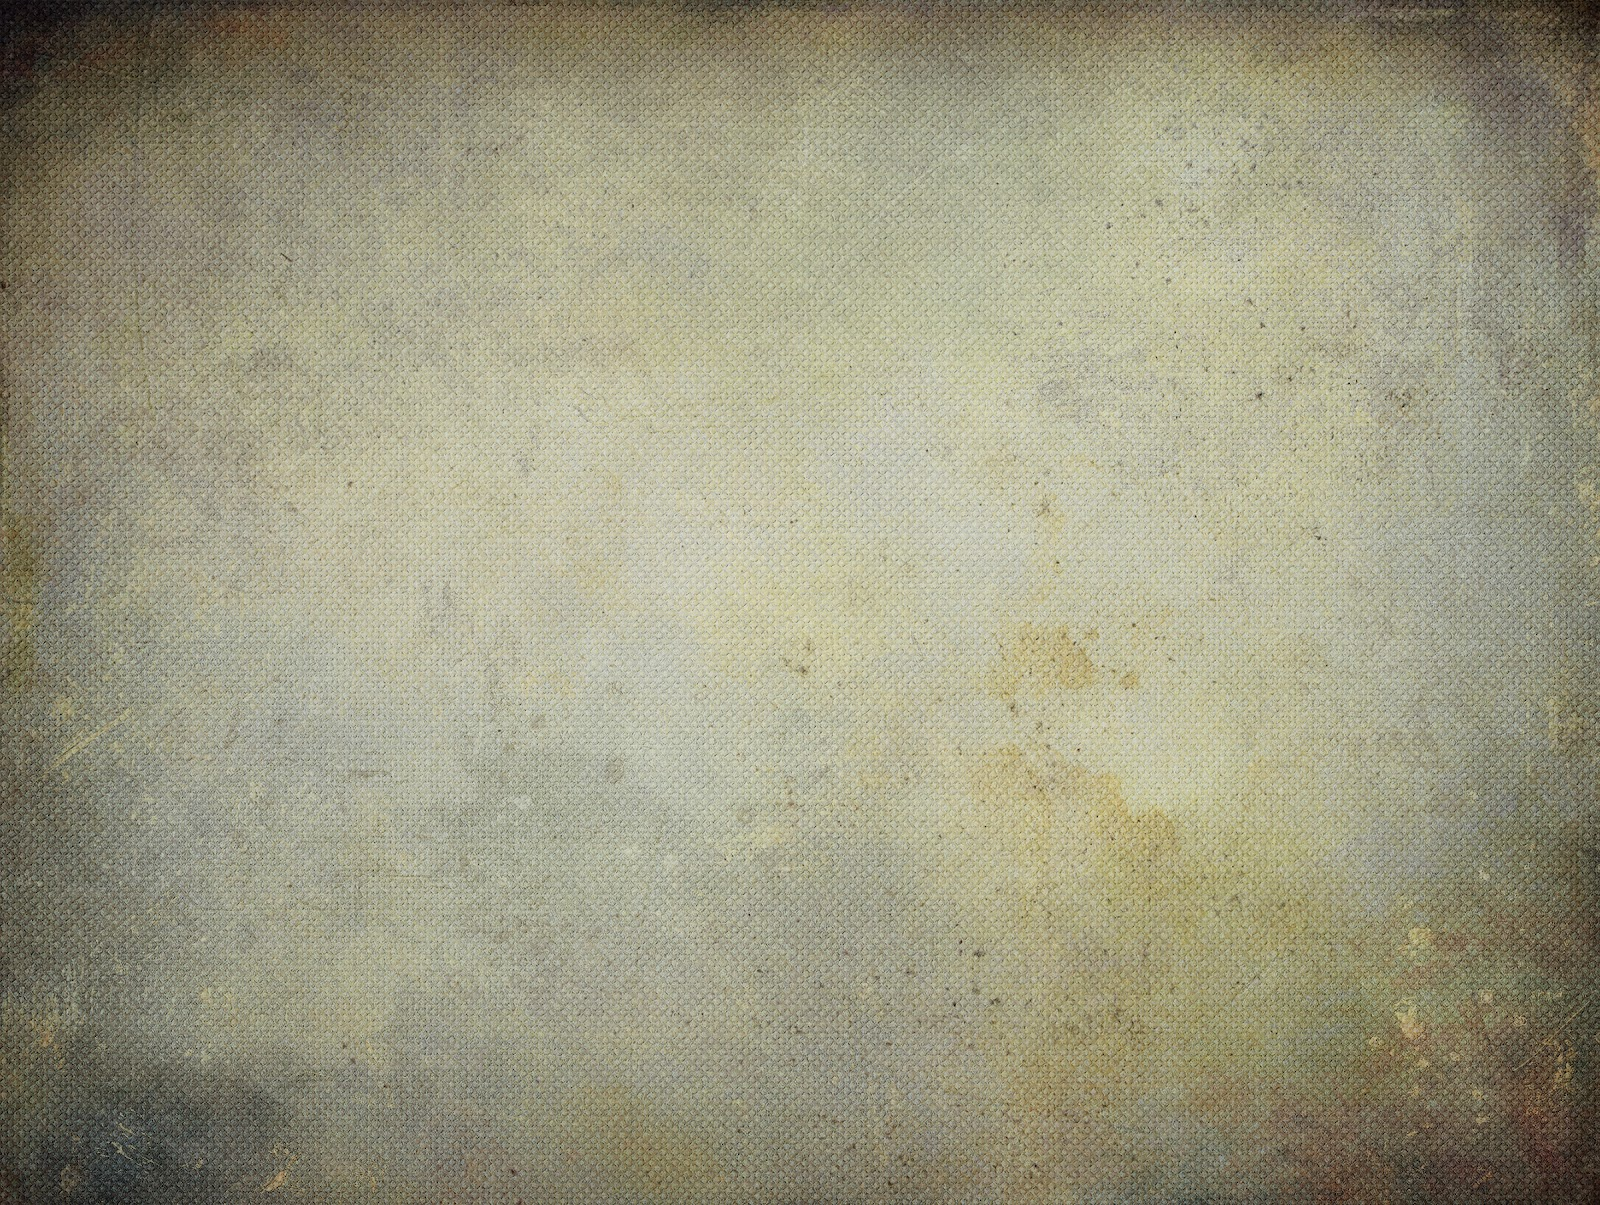 Shadowhouse Creations: Used Canvas Texture Set and Sample Image